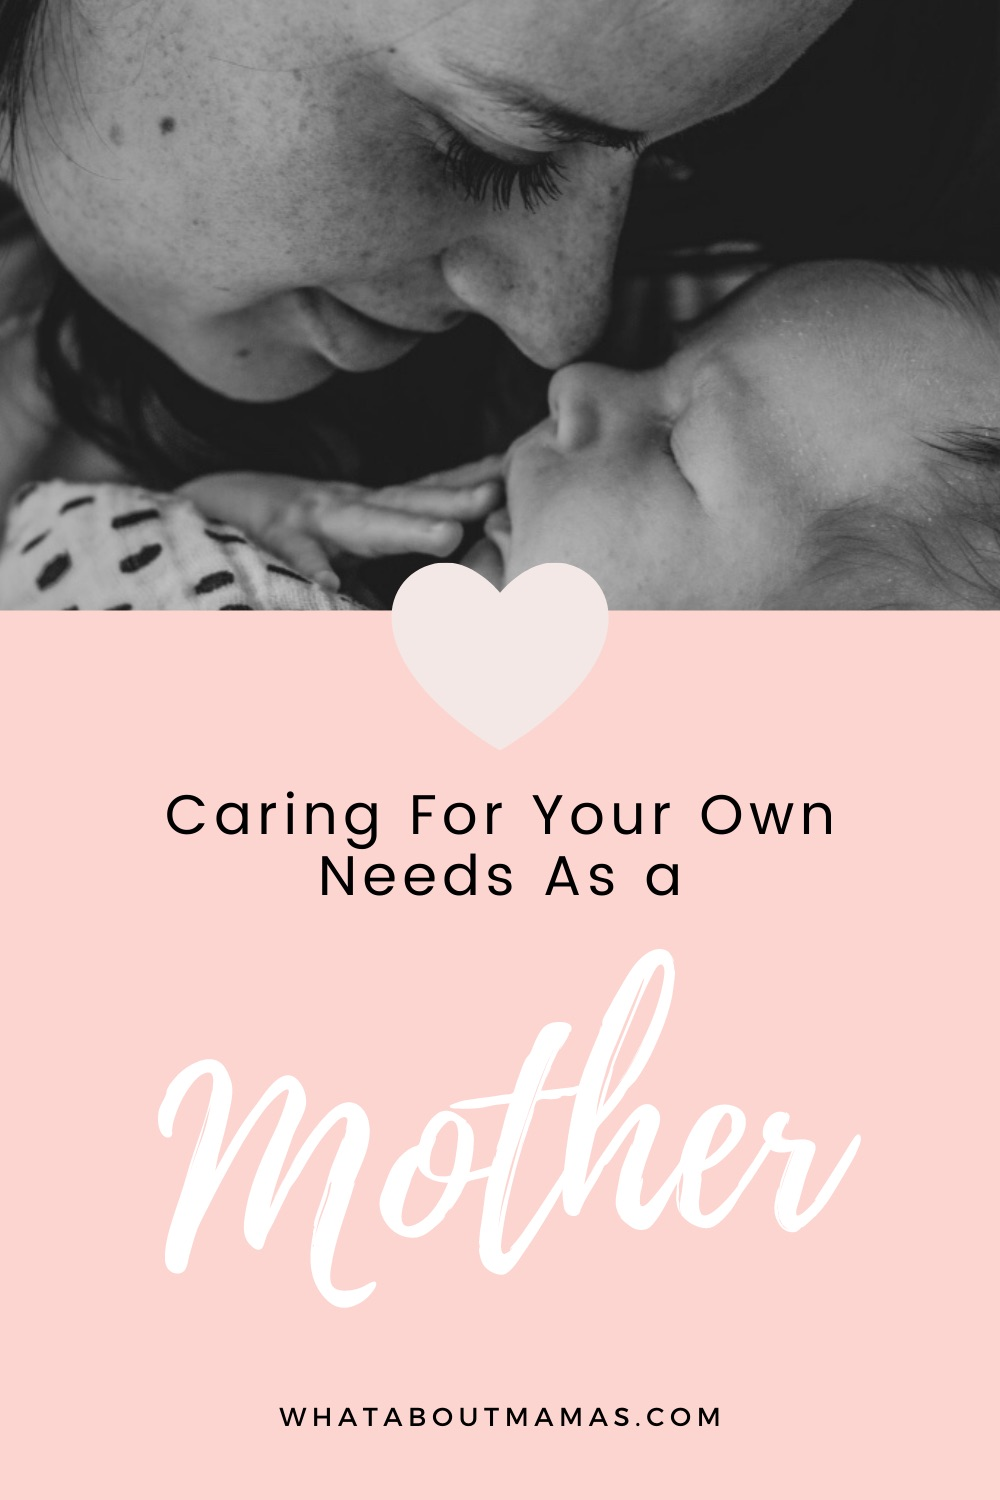 Caring for your needs as a new mom